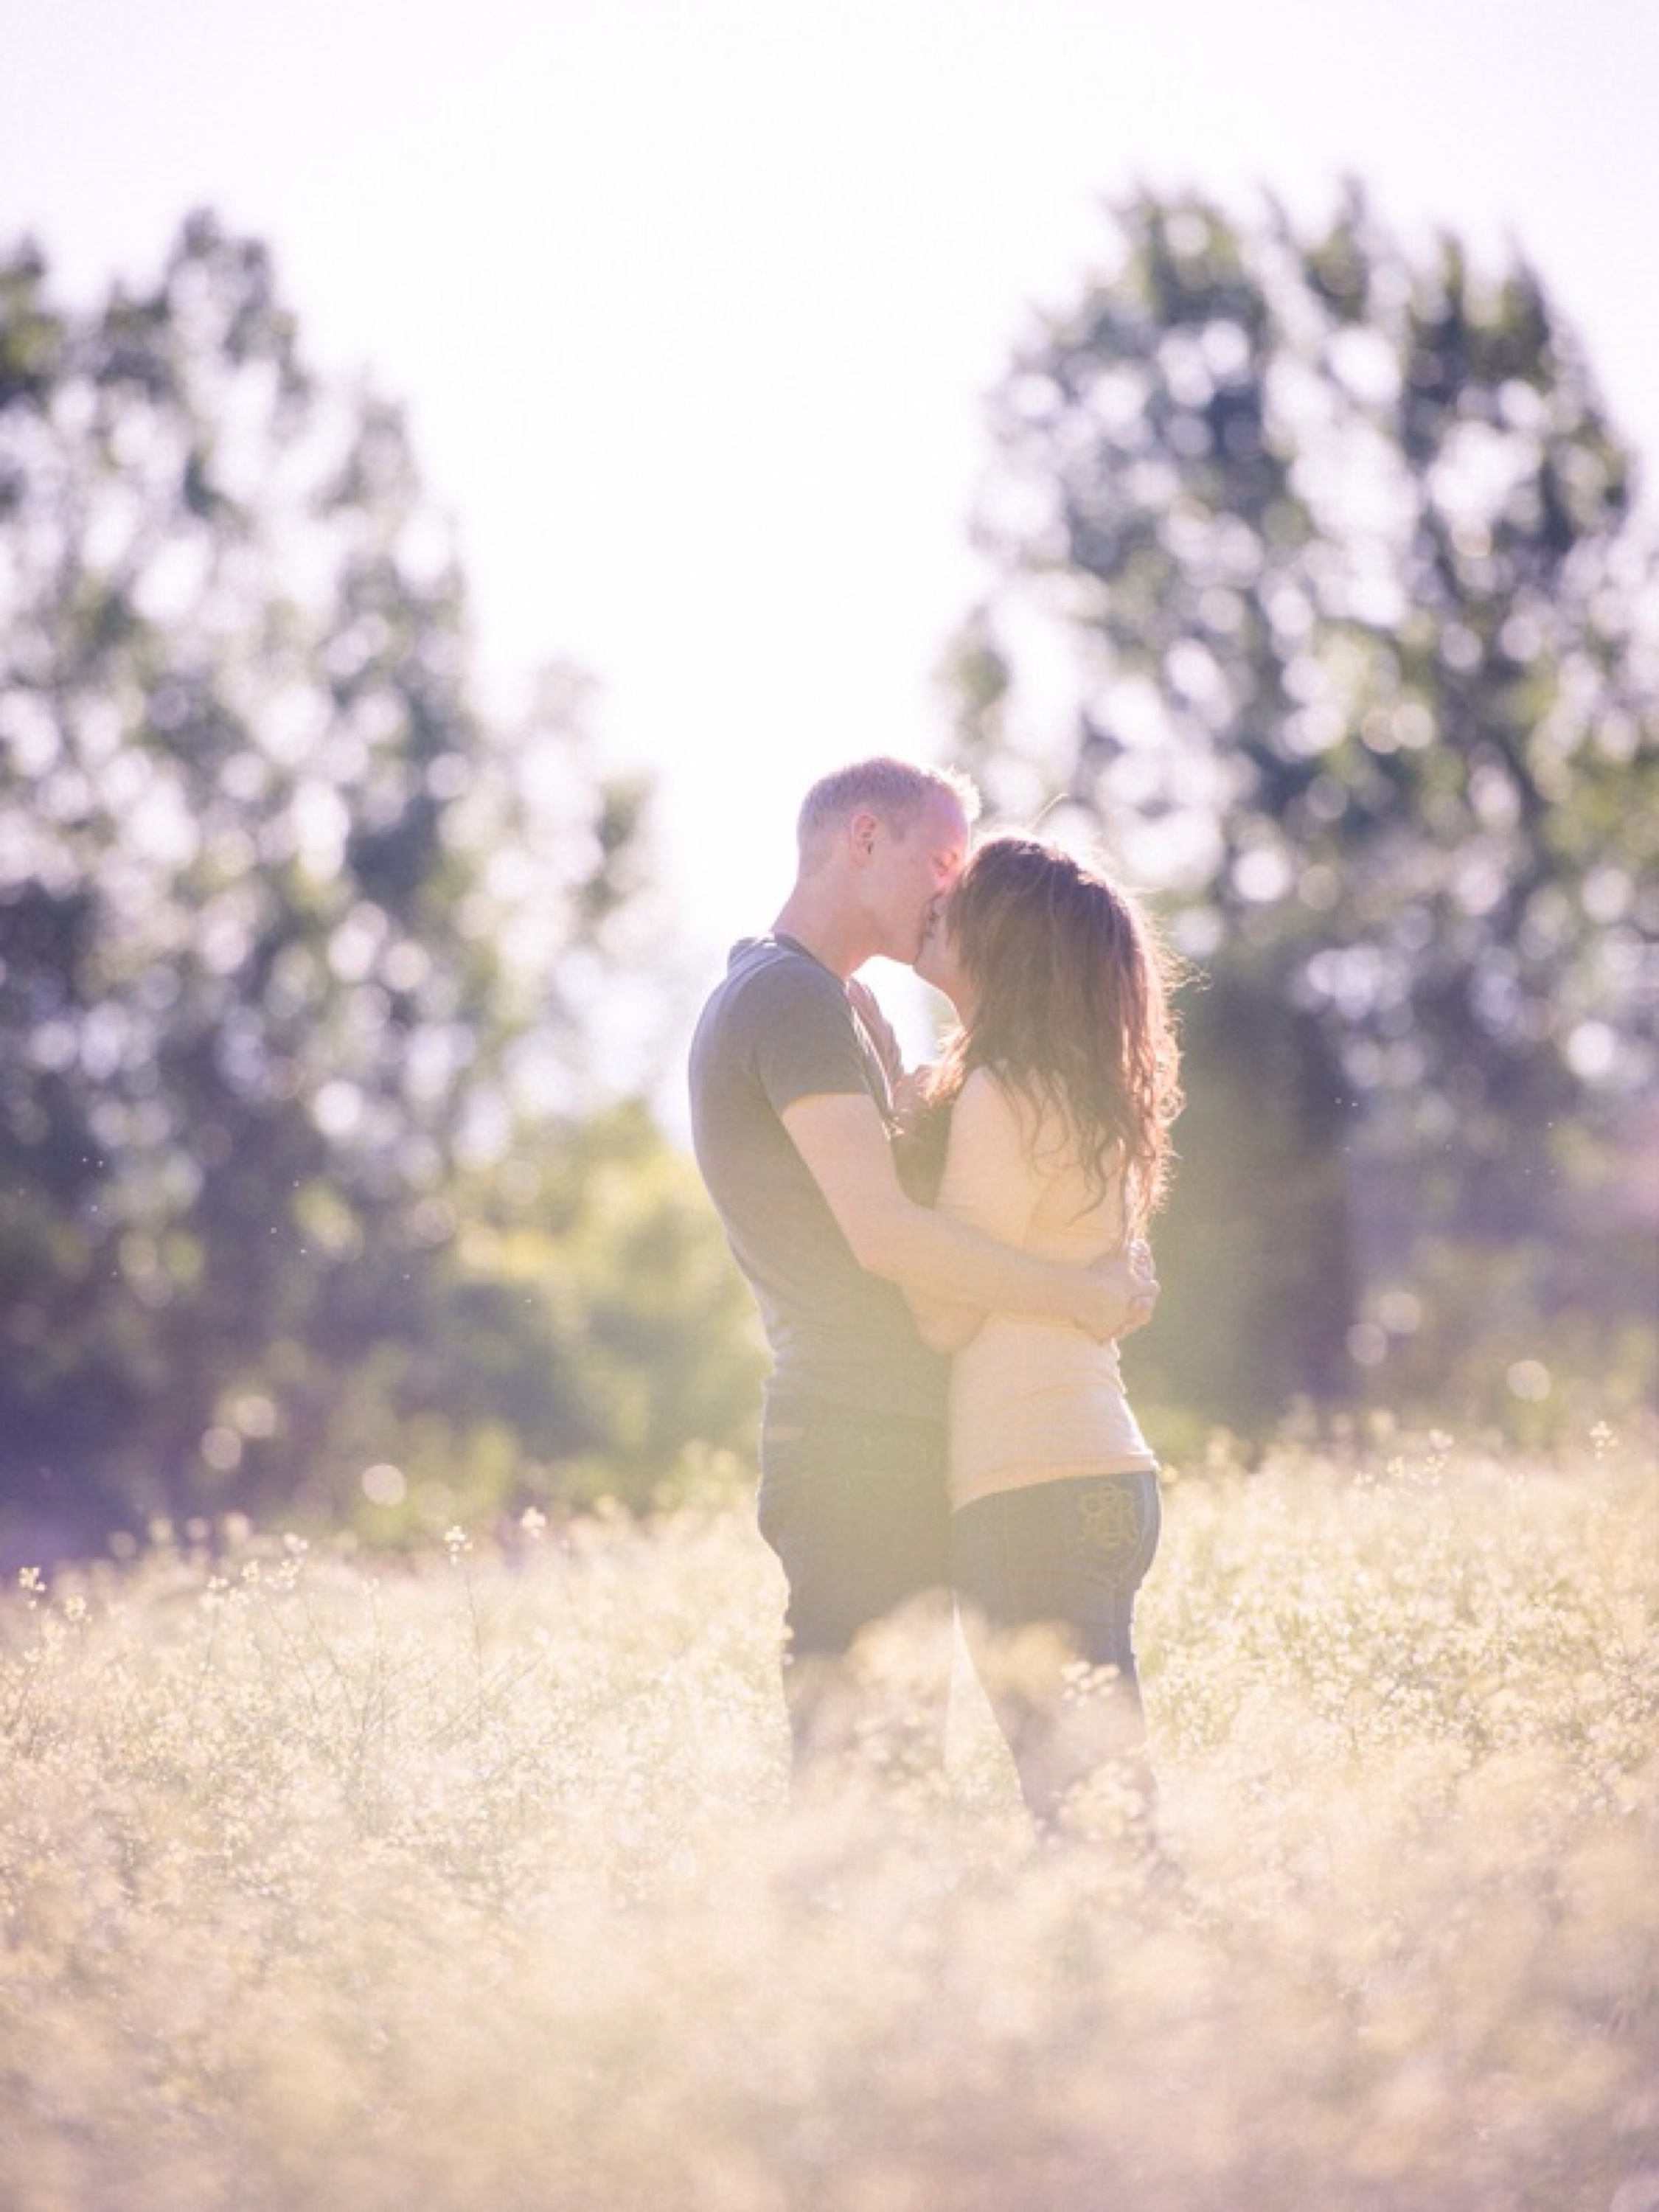 Utah Valley Engagement: Photo by Rememory Photography via Heather Renee Celebrations